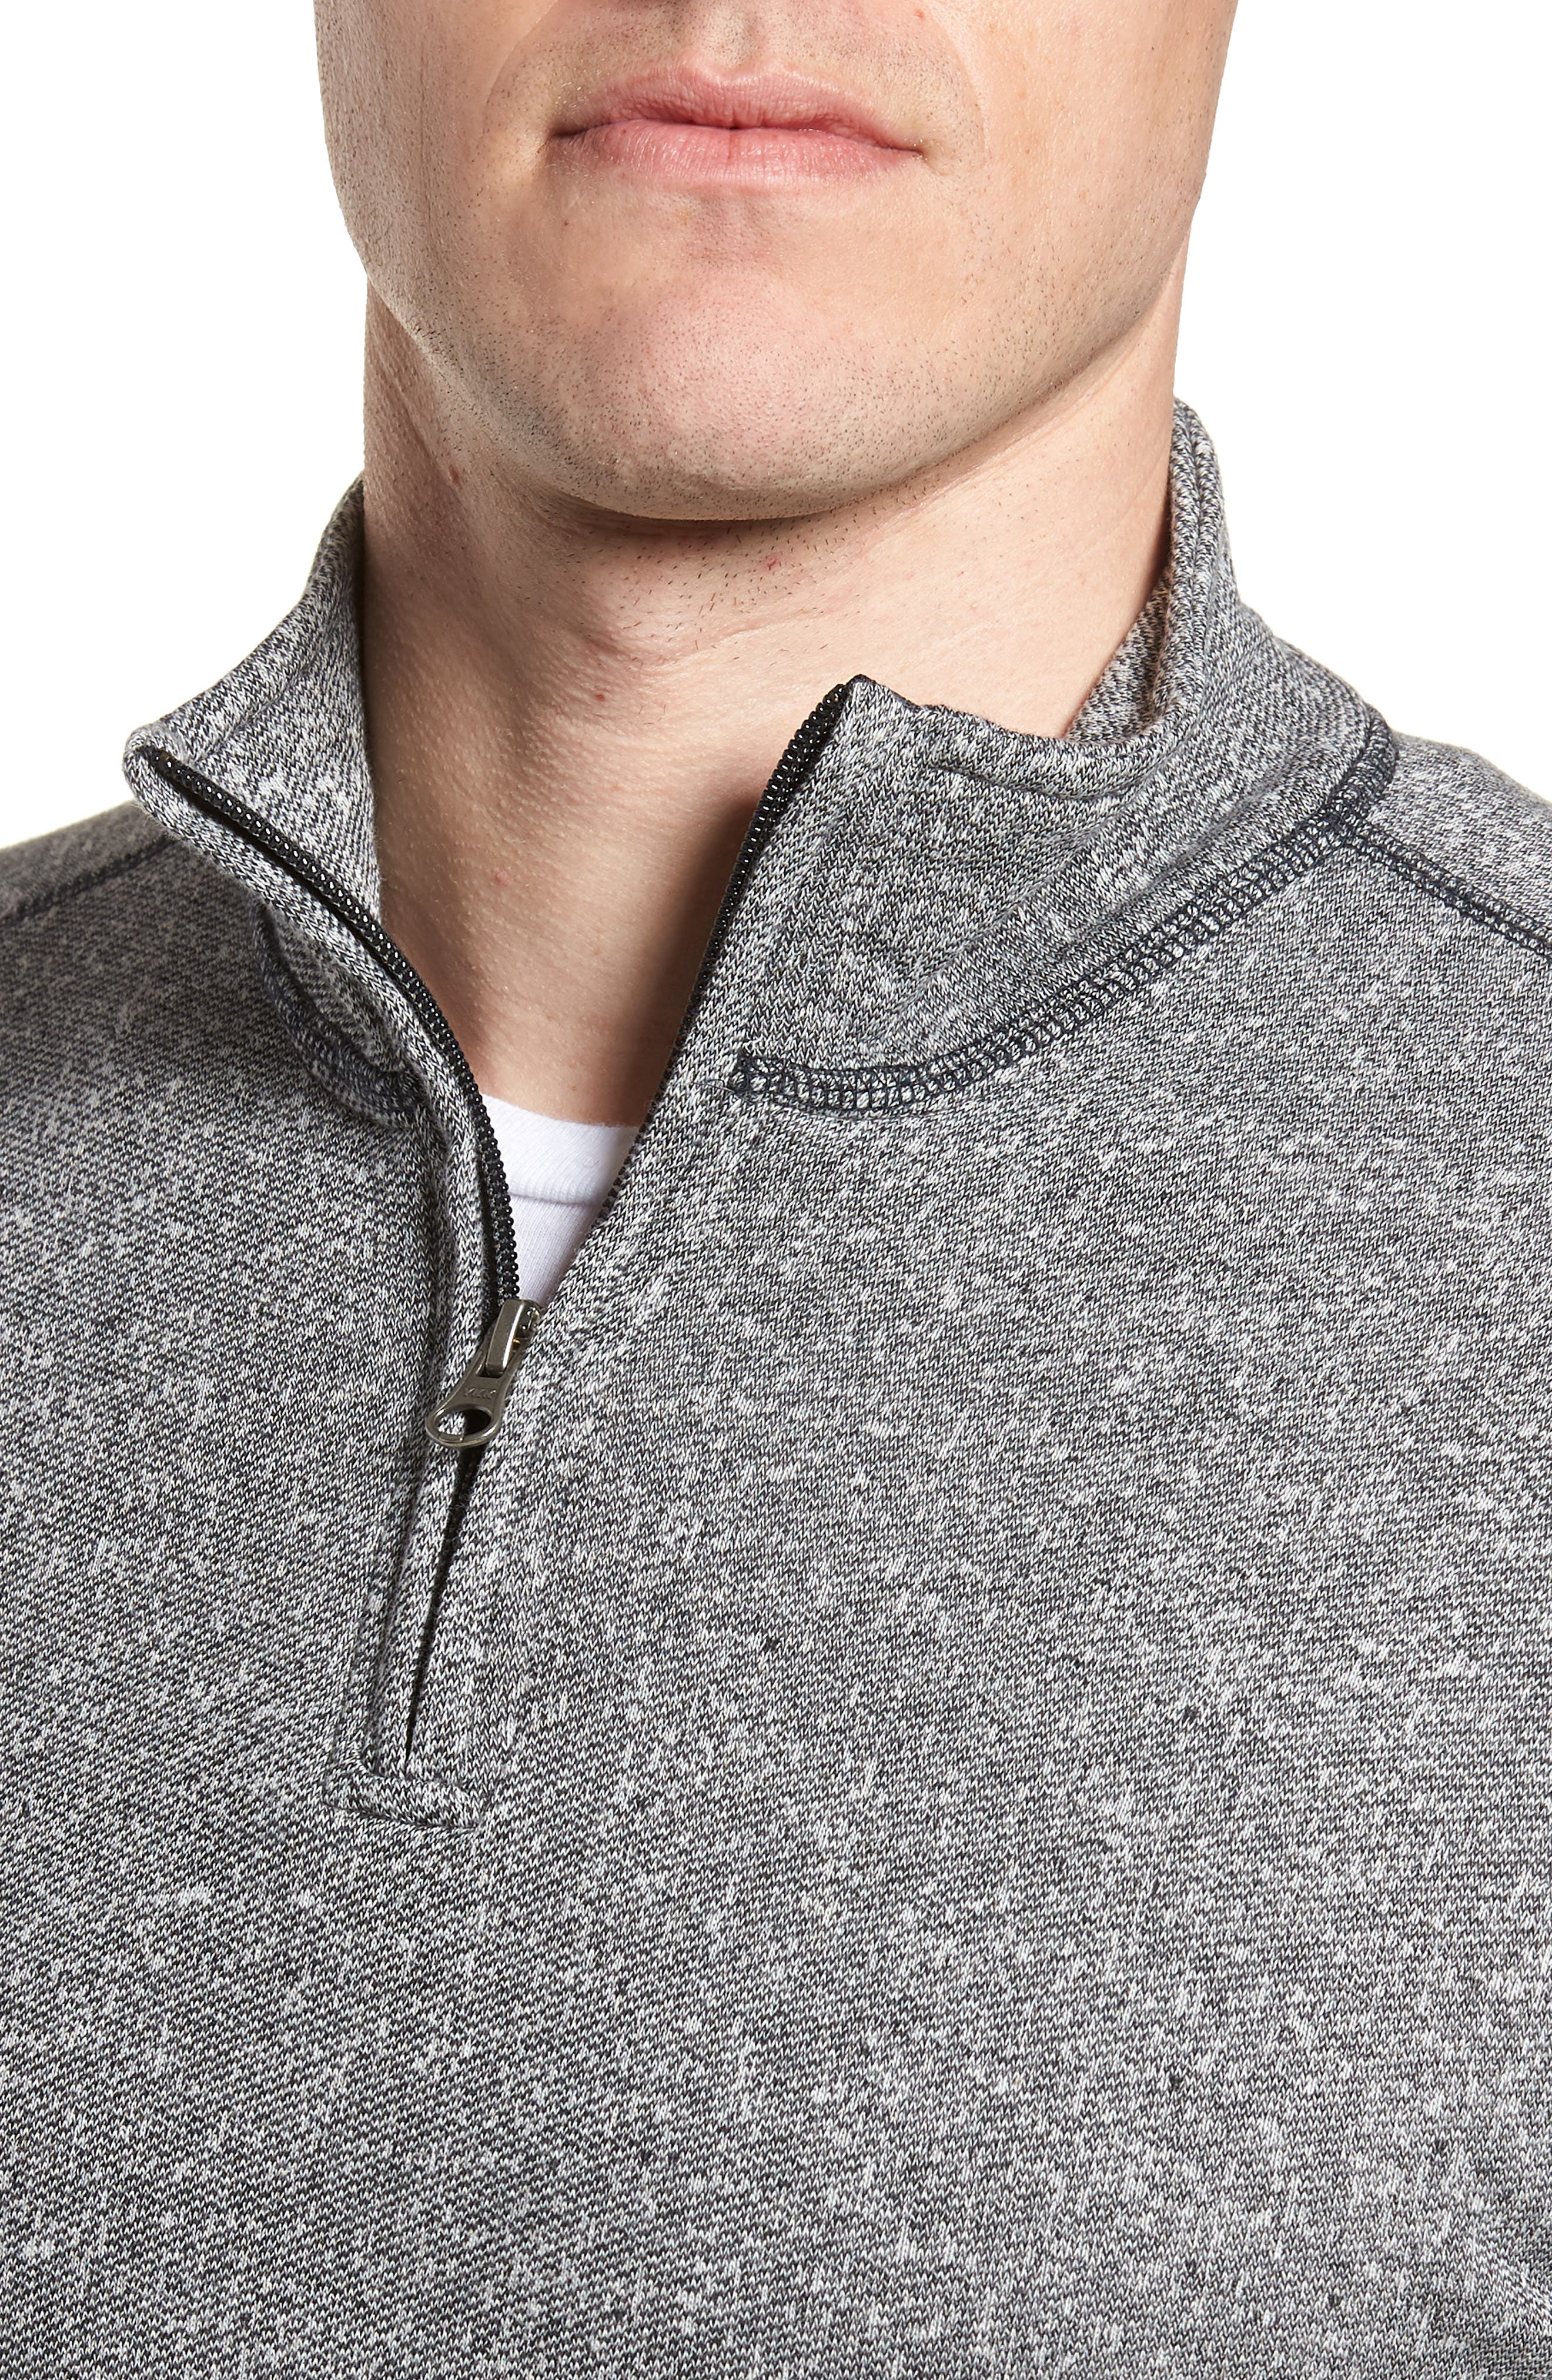 Regular Fit French Terry Pullover,                             Alternate thumbnail 4, color,                             CHARCOAL